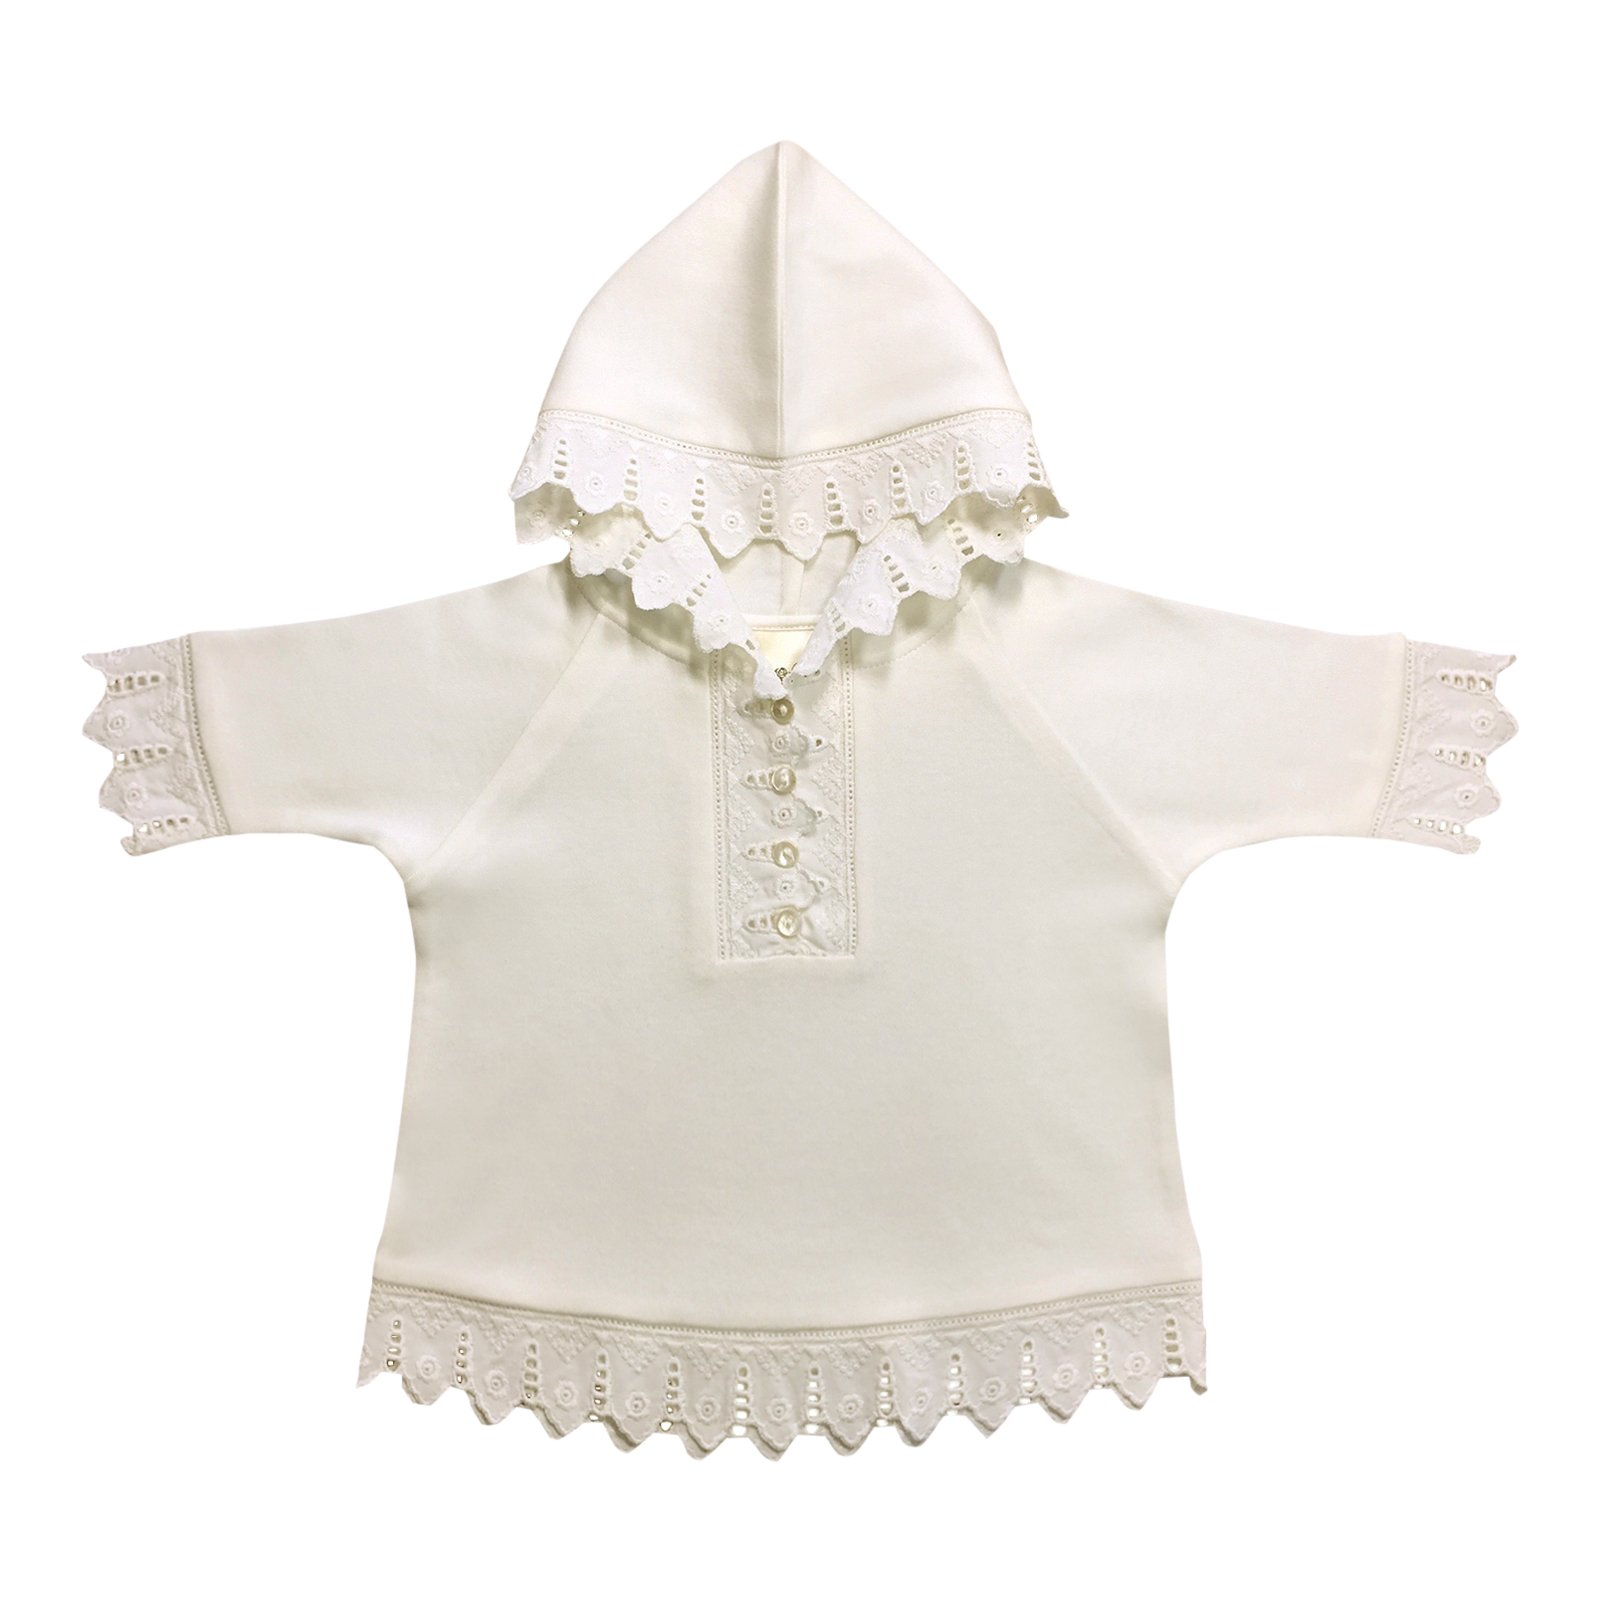 Victorian Organics Little Girls Hoodie Organic Cotton and Lace Toddler Button Henley Shirt (3T 3 Toddler, Antique White)